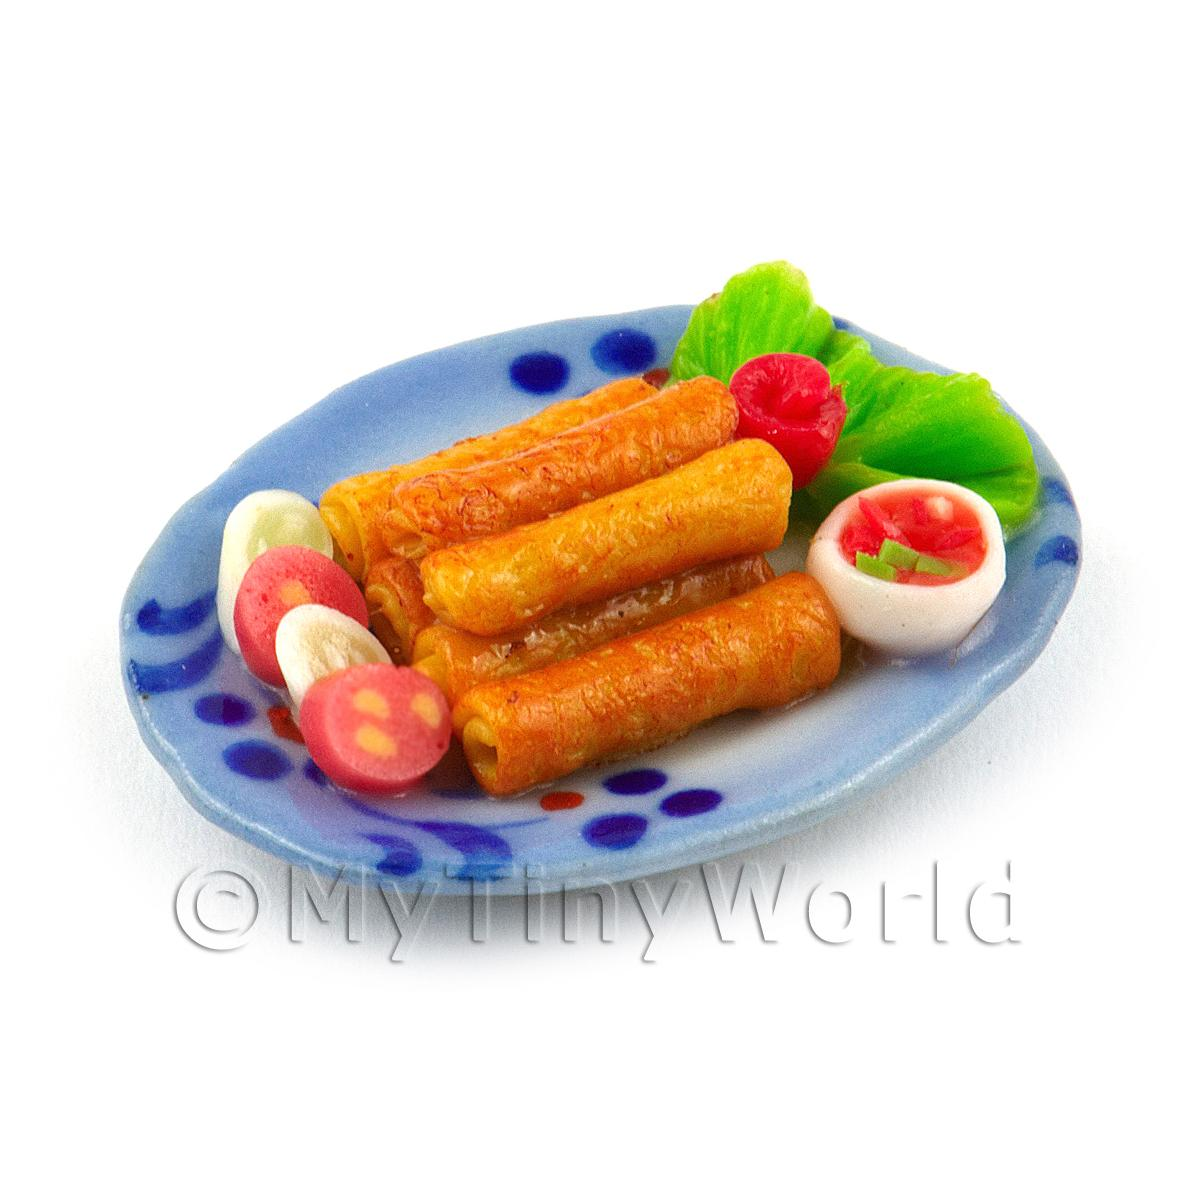 Dolls House Miniature Pile of Spring Rolls on a Ceramic Plate